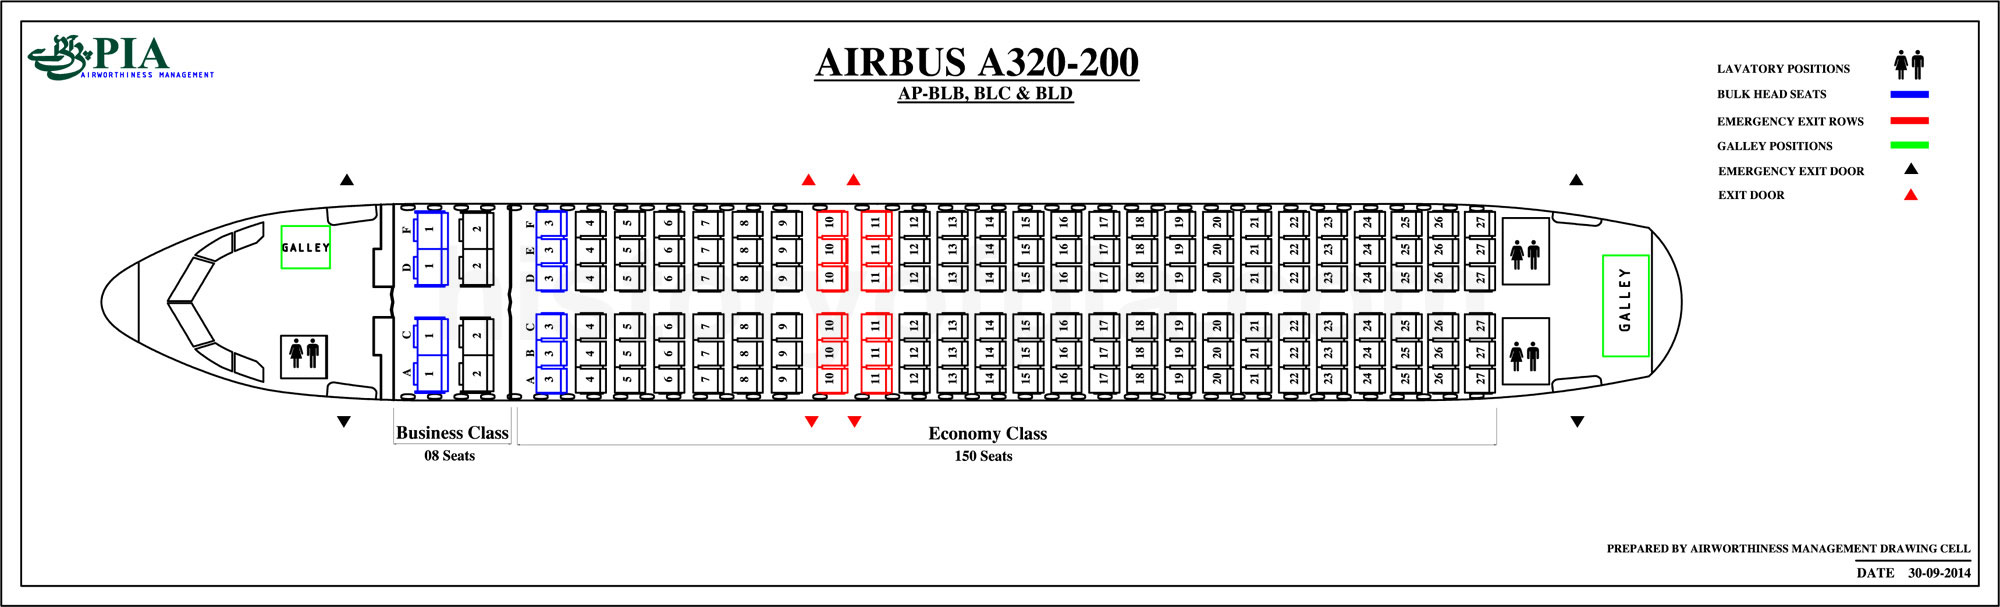 Airbus A380 800 Seating Chart Lufthansa furthermore Seating charts in addition Viewtopic in addition 19 also Seating charts. on seating charts